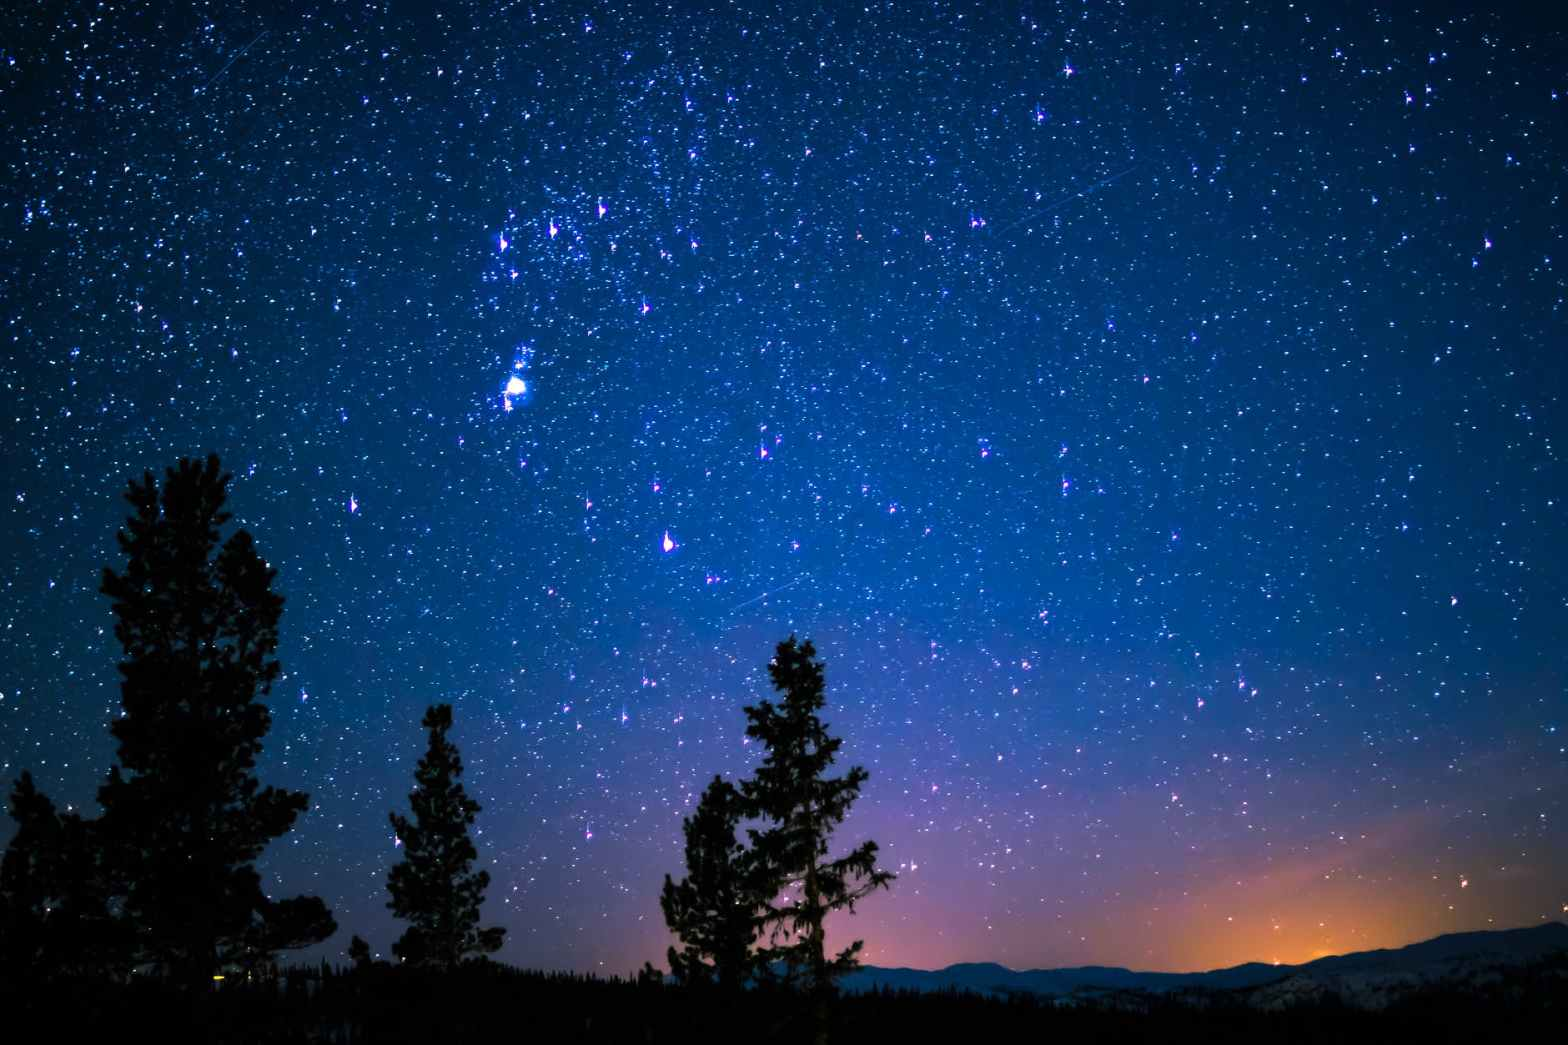 silhouette of trees and mountain under blue starry sky